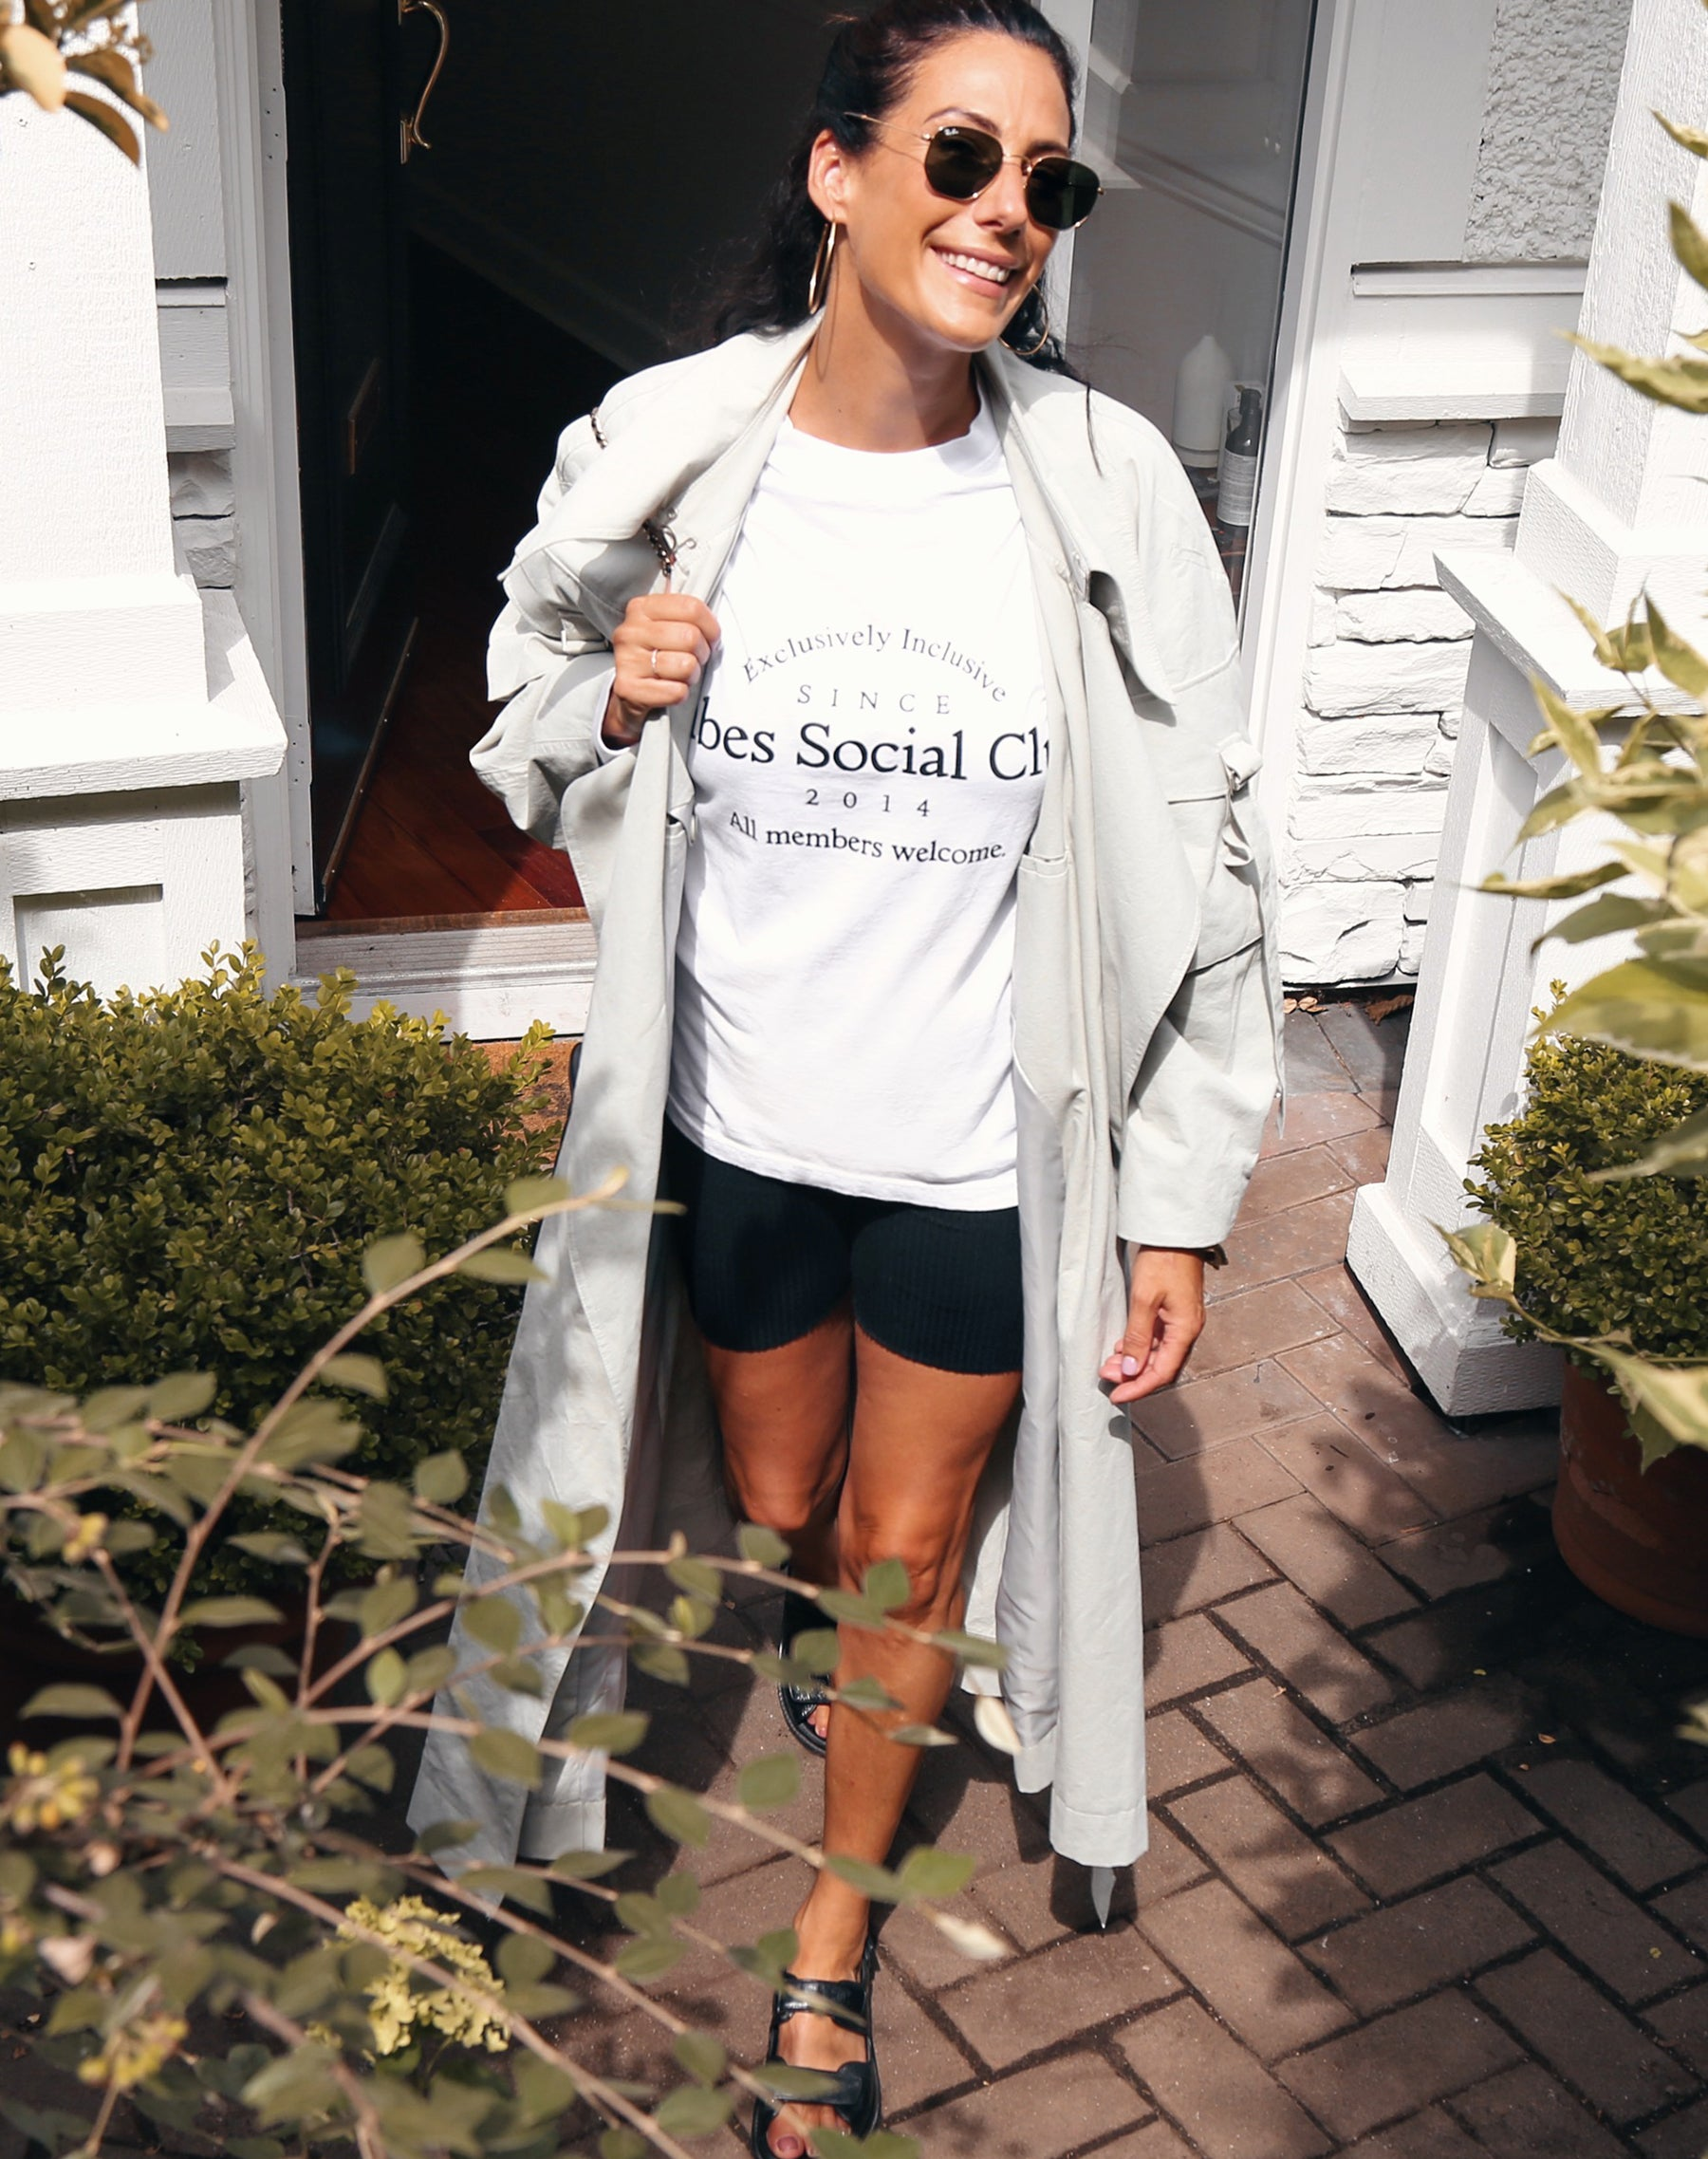 This is a photo of the Babes Social Club Long Sleeve Tee in white and black by Brunette the Label.